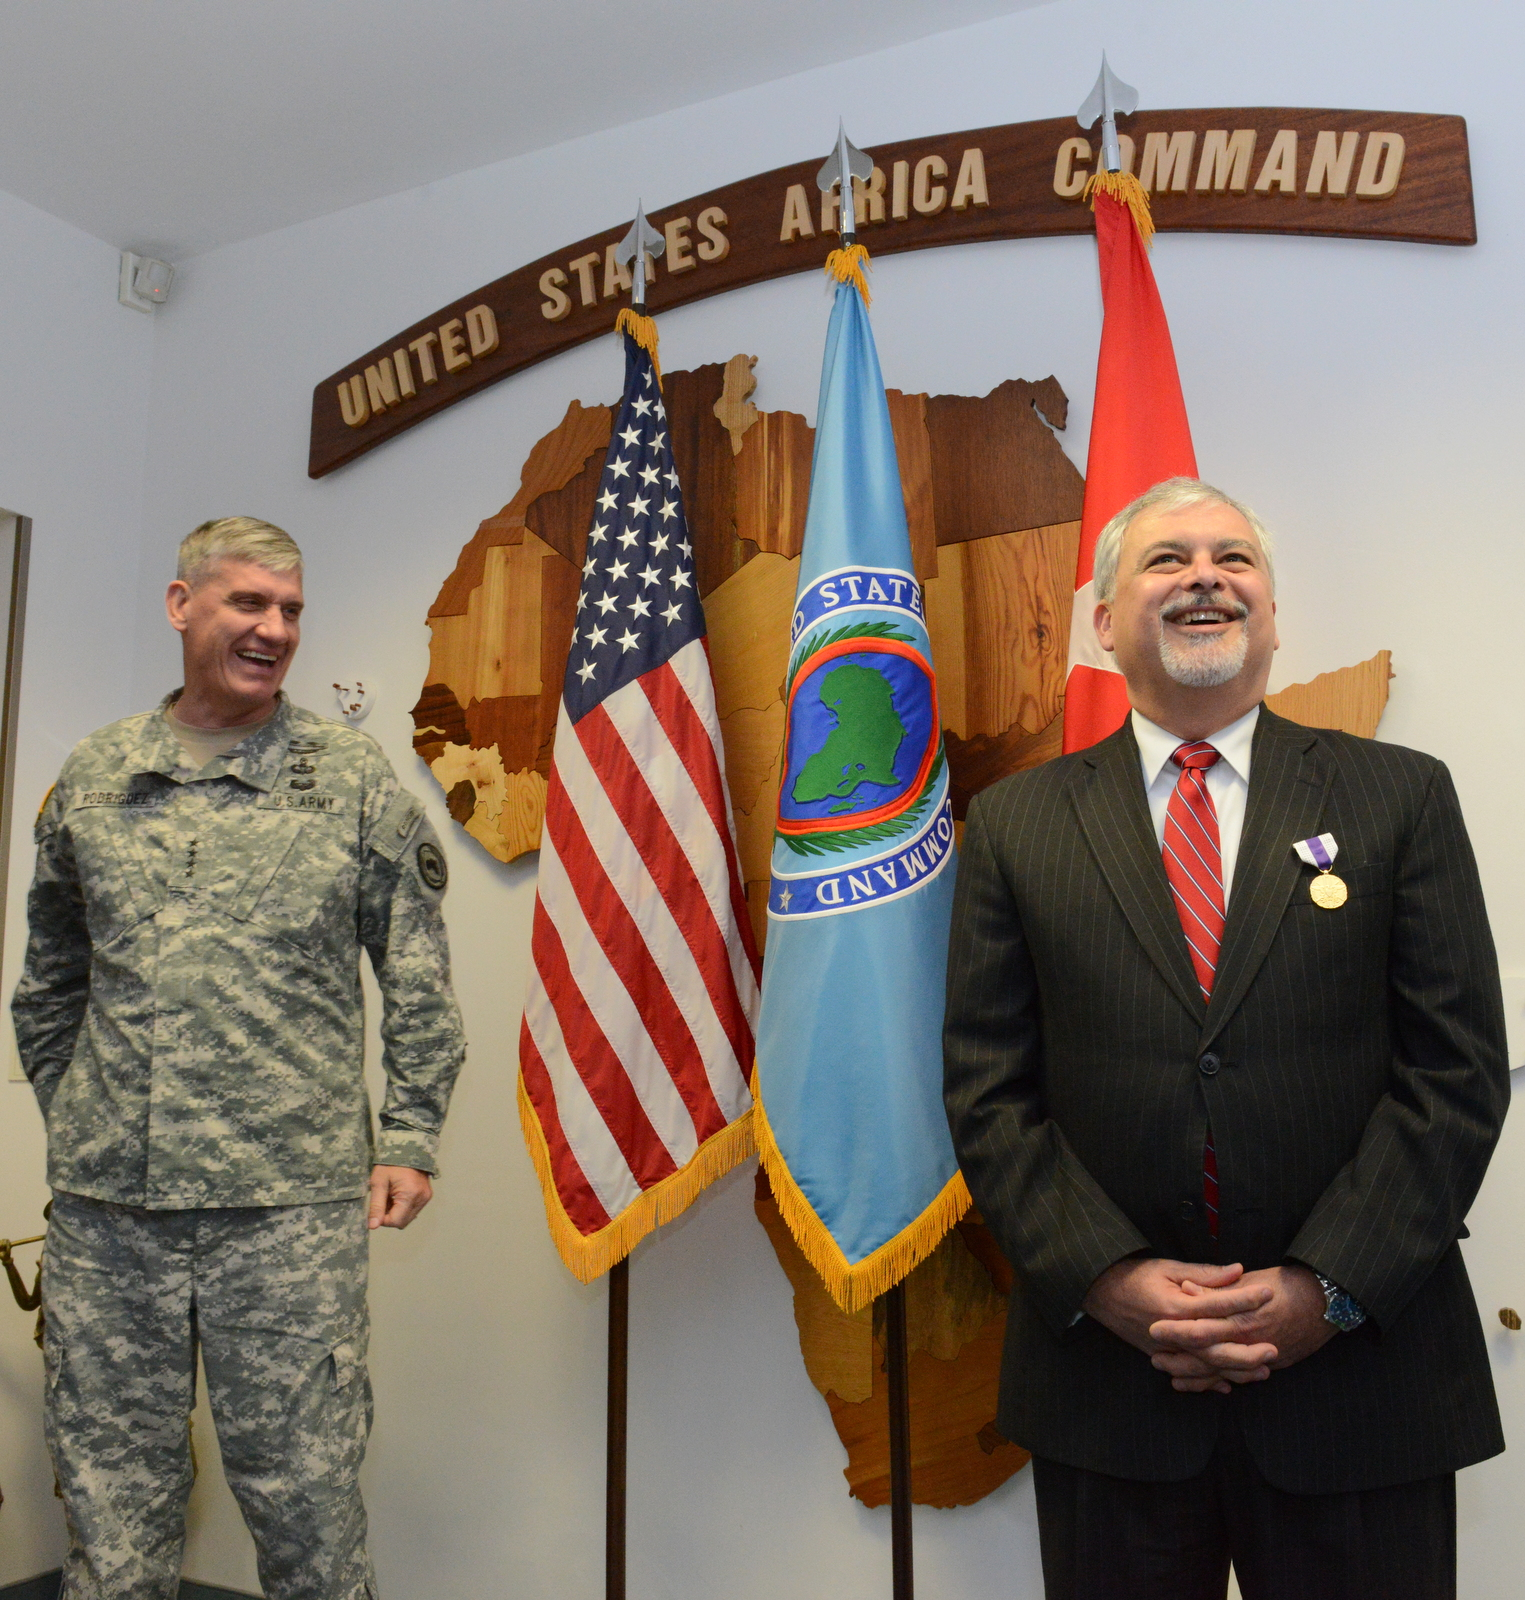 Ambassador Phillip Carter III, right, the command's outgoing deputy to the commander for civil military engagement,and U.S. Army Gen. David Rodriguez, commander of U.S. Africa Command, address members of the AFRICOM staff at Kelley Barracks, U.S. Army Garrison Stuttgart, Germany, Sept. 17, 2015. Rodriguez awarded Carter with the Joint Distinguished Civilian Service Award, the highest military award a civilian can earn from a joint command or staff.